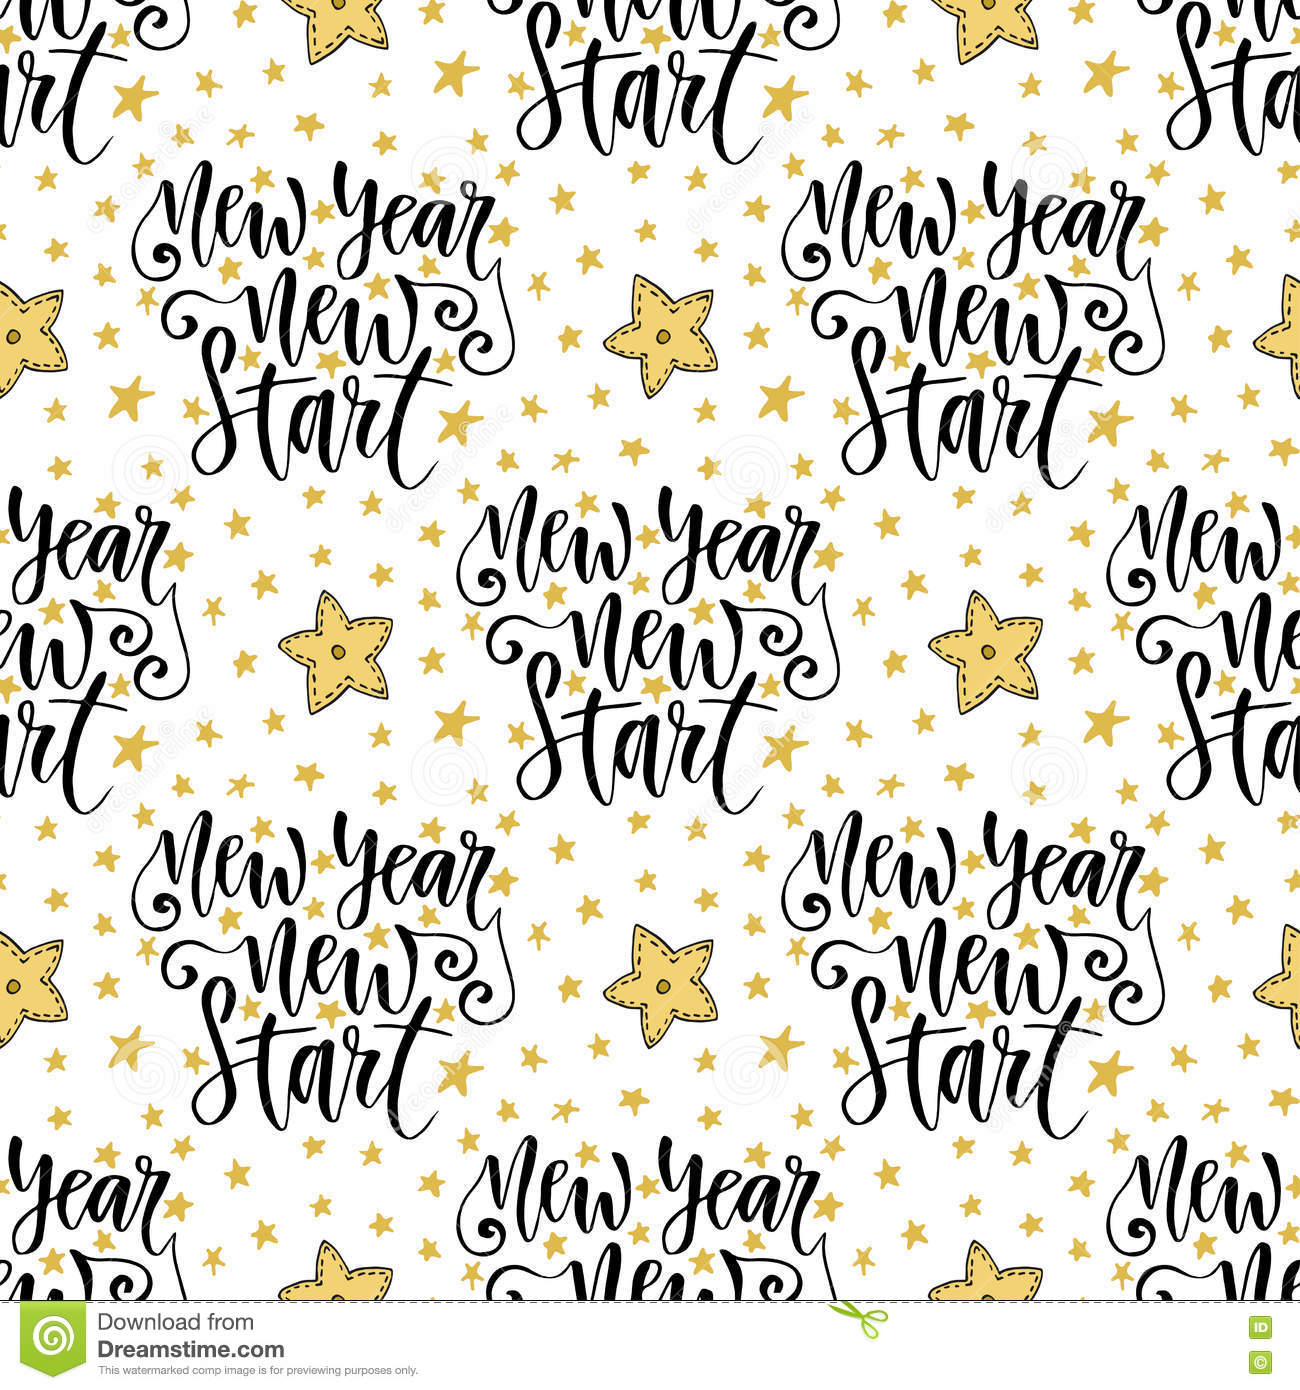 New Year Start Vector Seamless Pattern With Modern Calligraphy